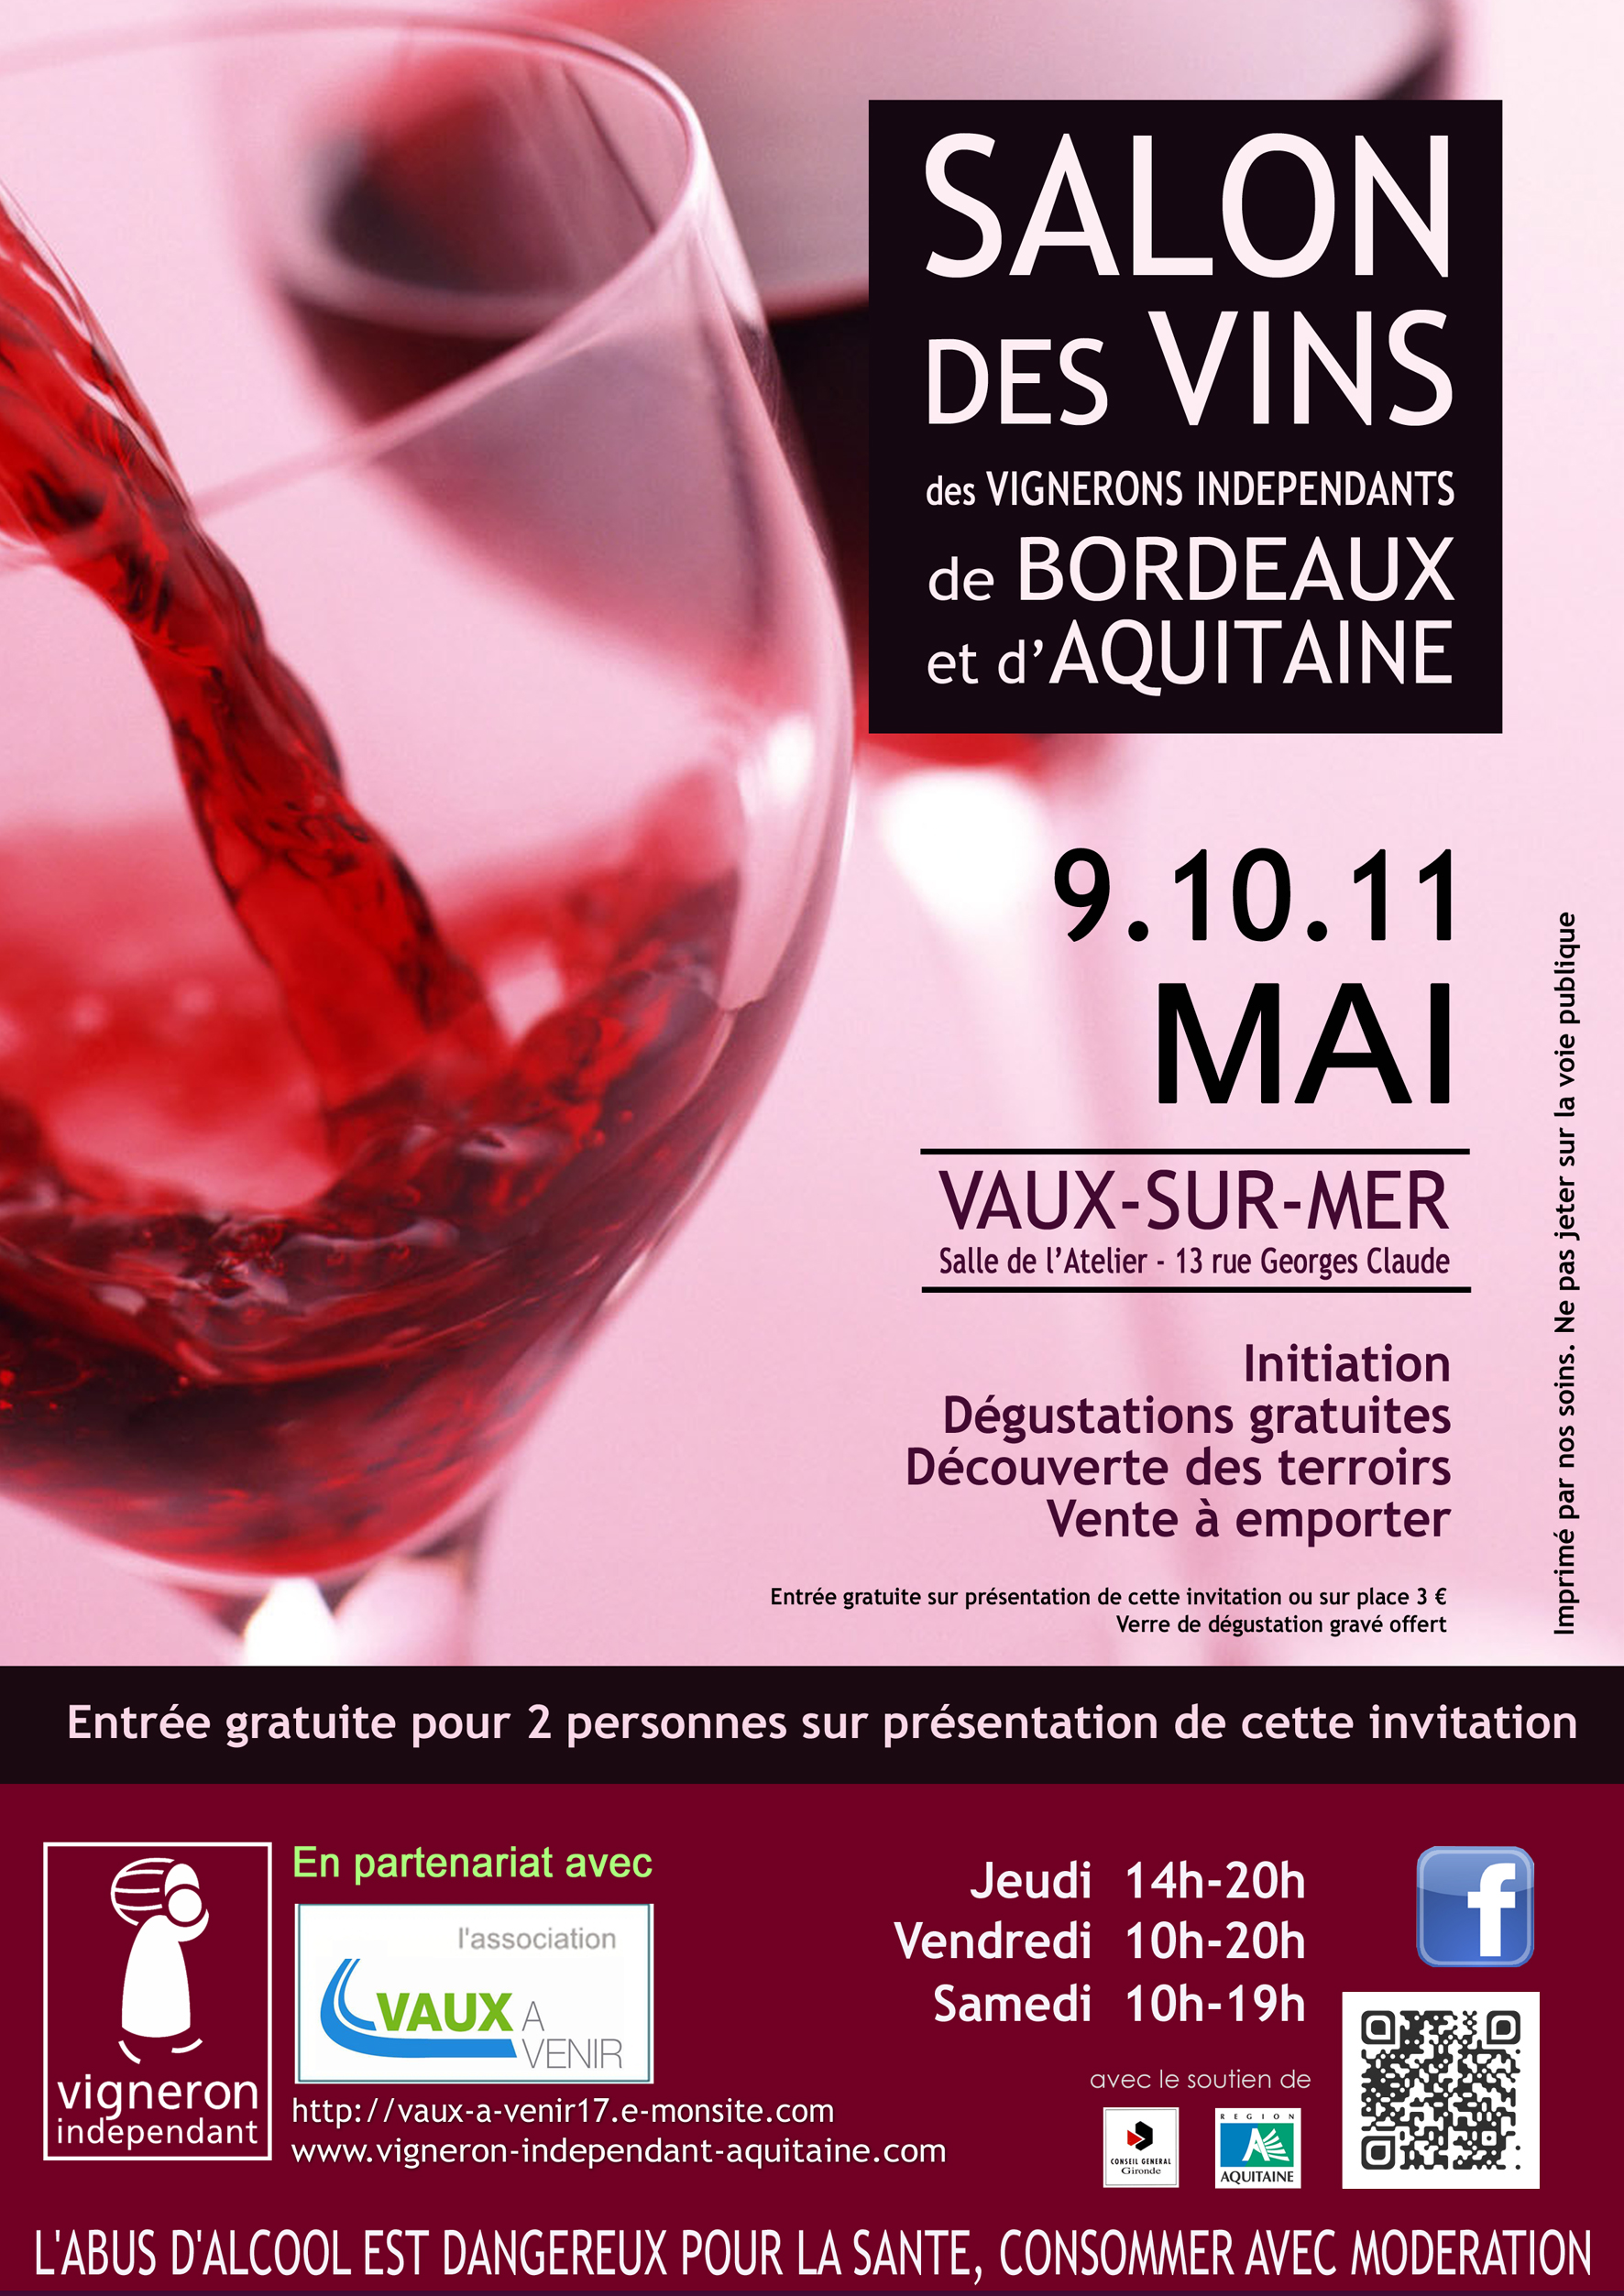 Salon des vins 2013 for Calendrier salon des vins